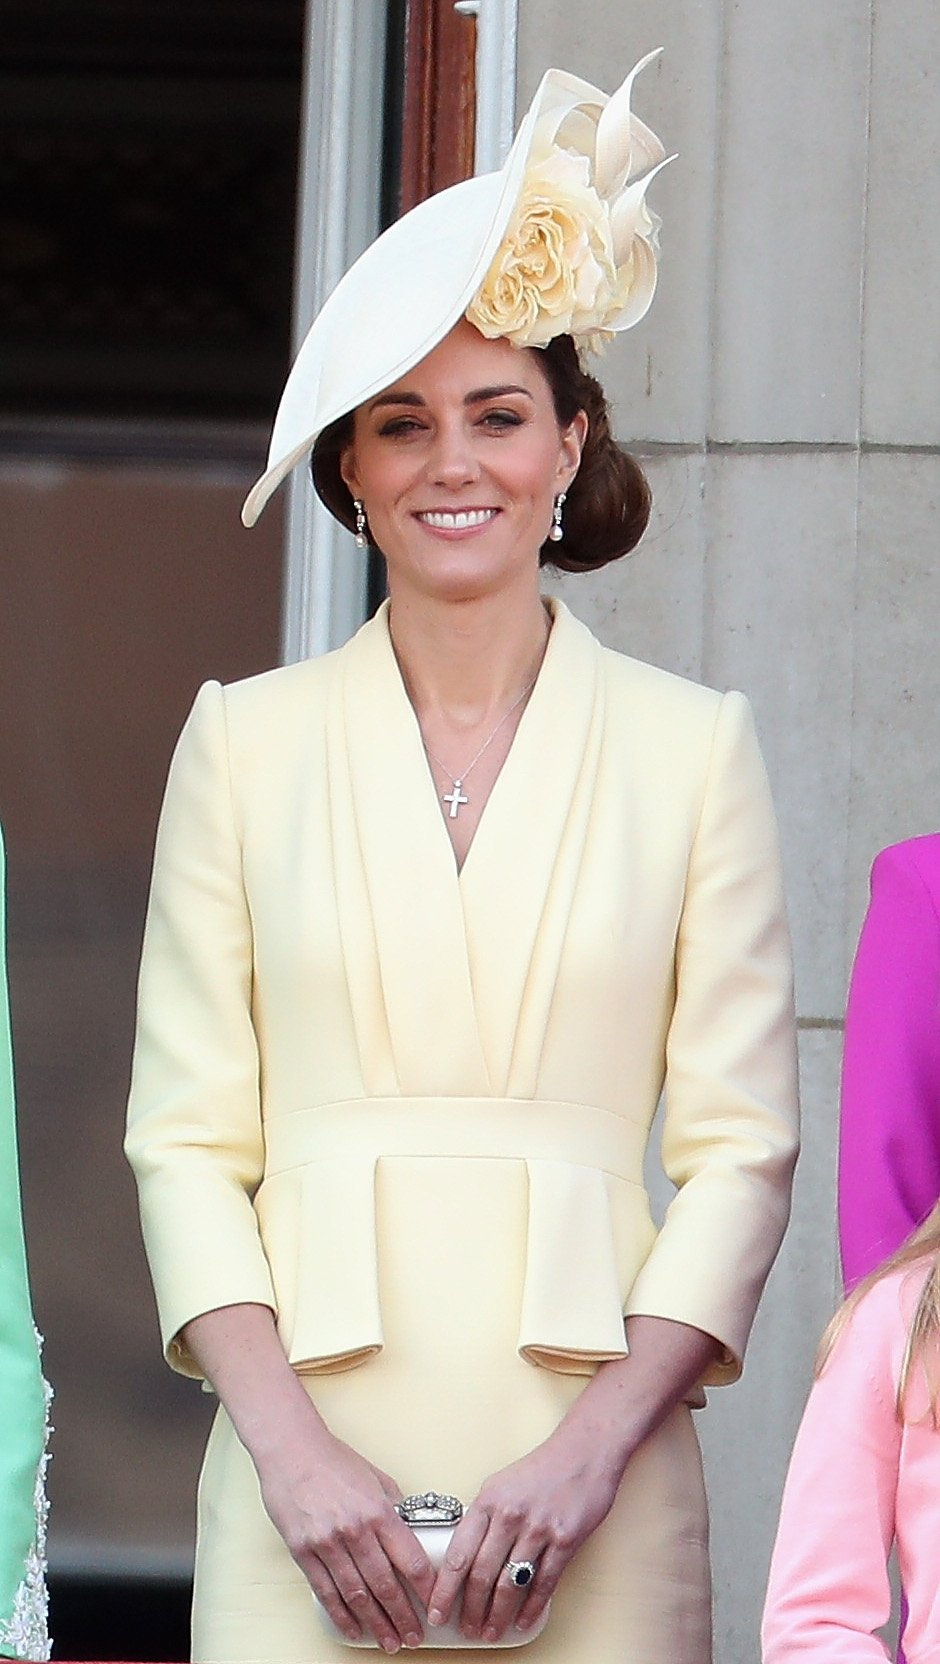 The Duchess of Cambridge, Kate Middleton, attends Trooping the Color in June 2019   Photo: Getty Images